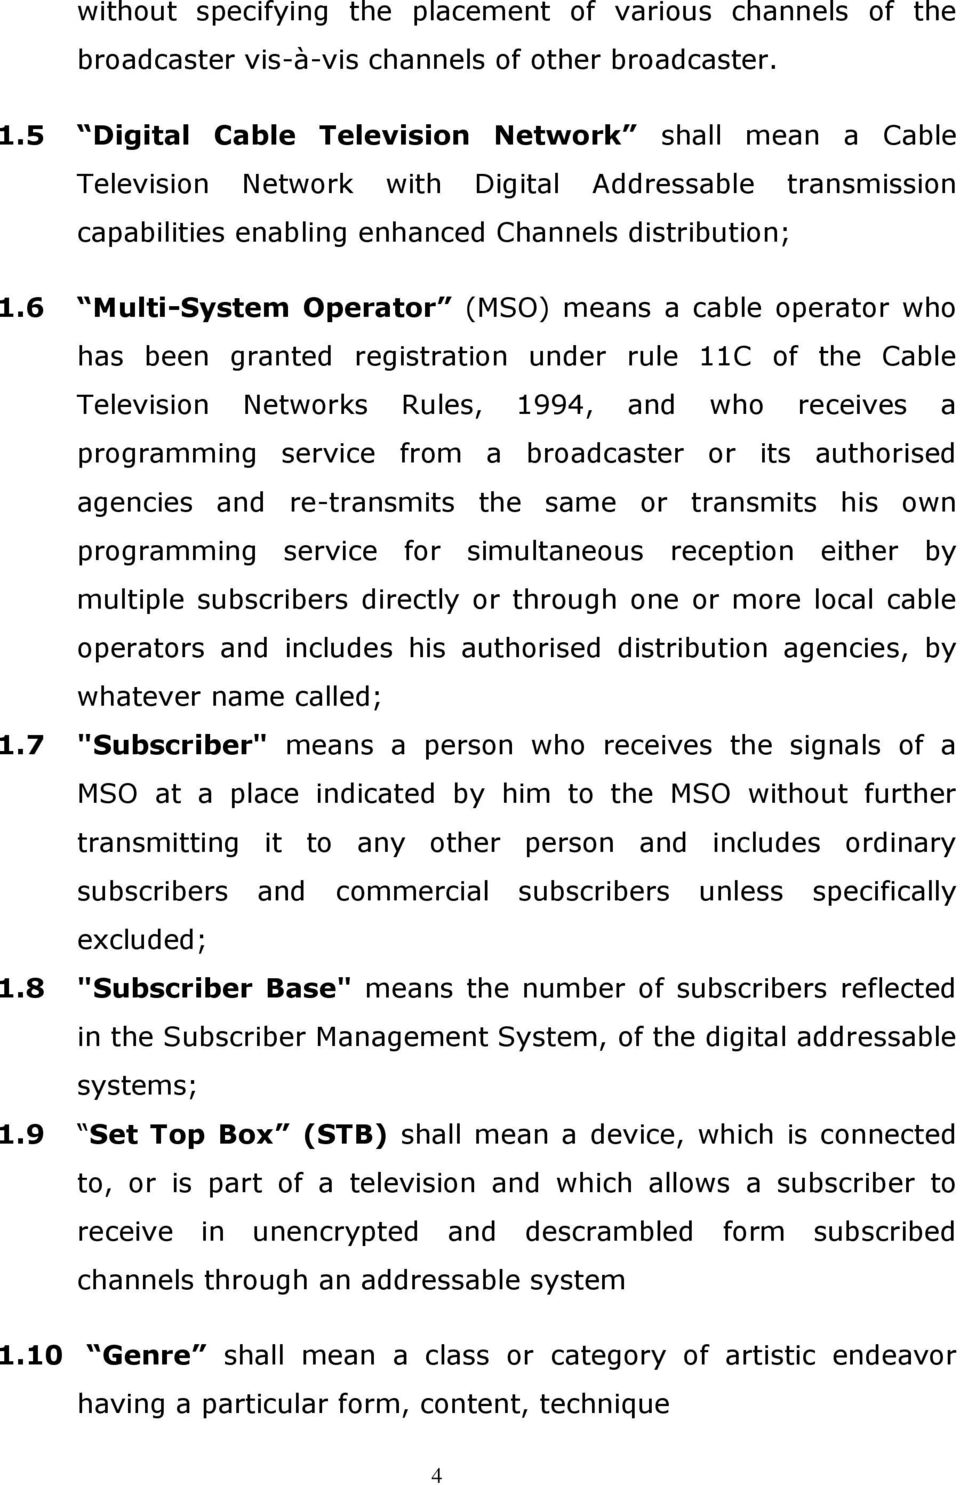 6 Multi-System Operator (MSO) means a cable operator who has been granted registration under rule 11C of the Cable Television Networks Rules, 1994, and who receives a programming service from a